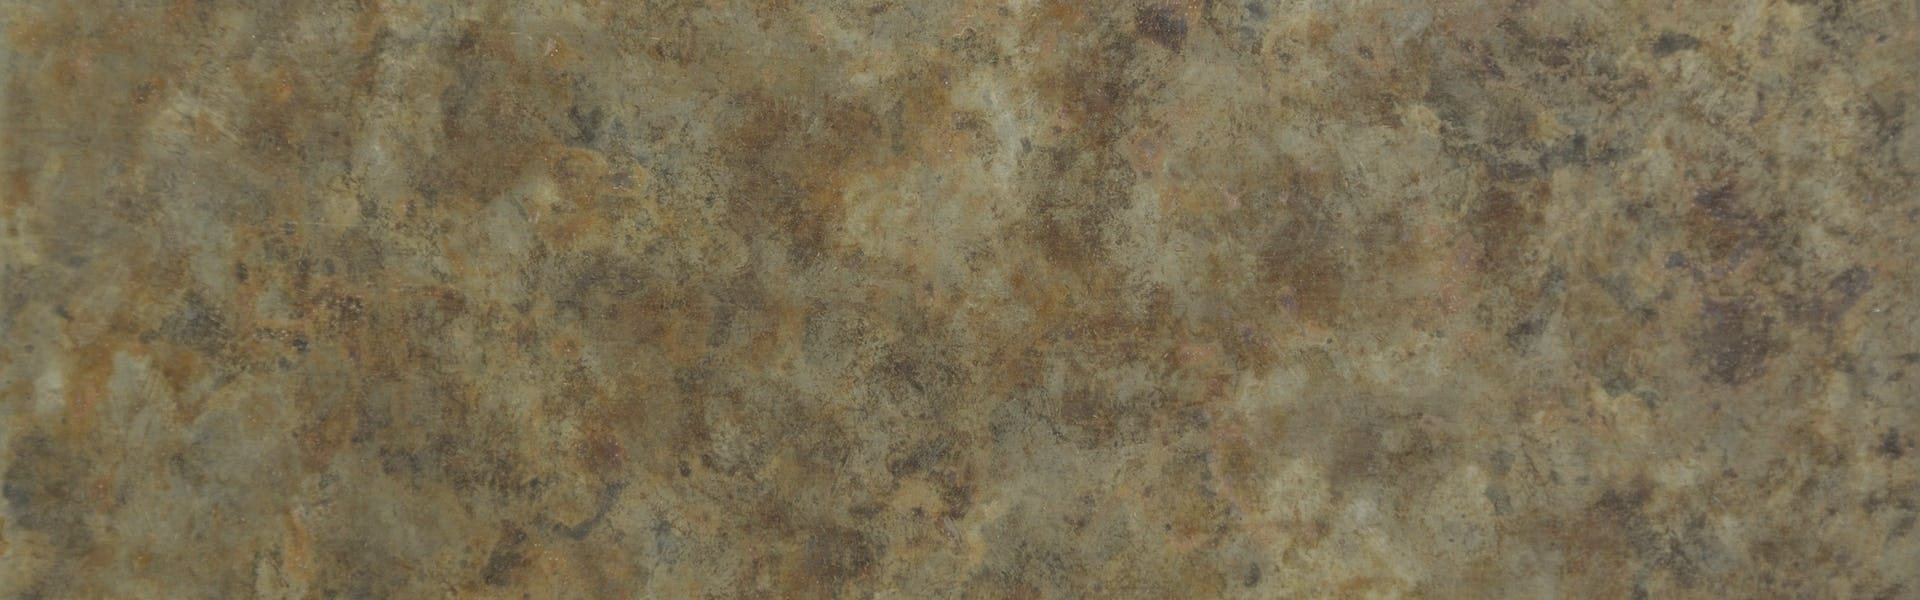 """12"""" SAMPLE OF THE BAROQUE ZINC™ SURFACE."""